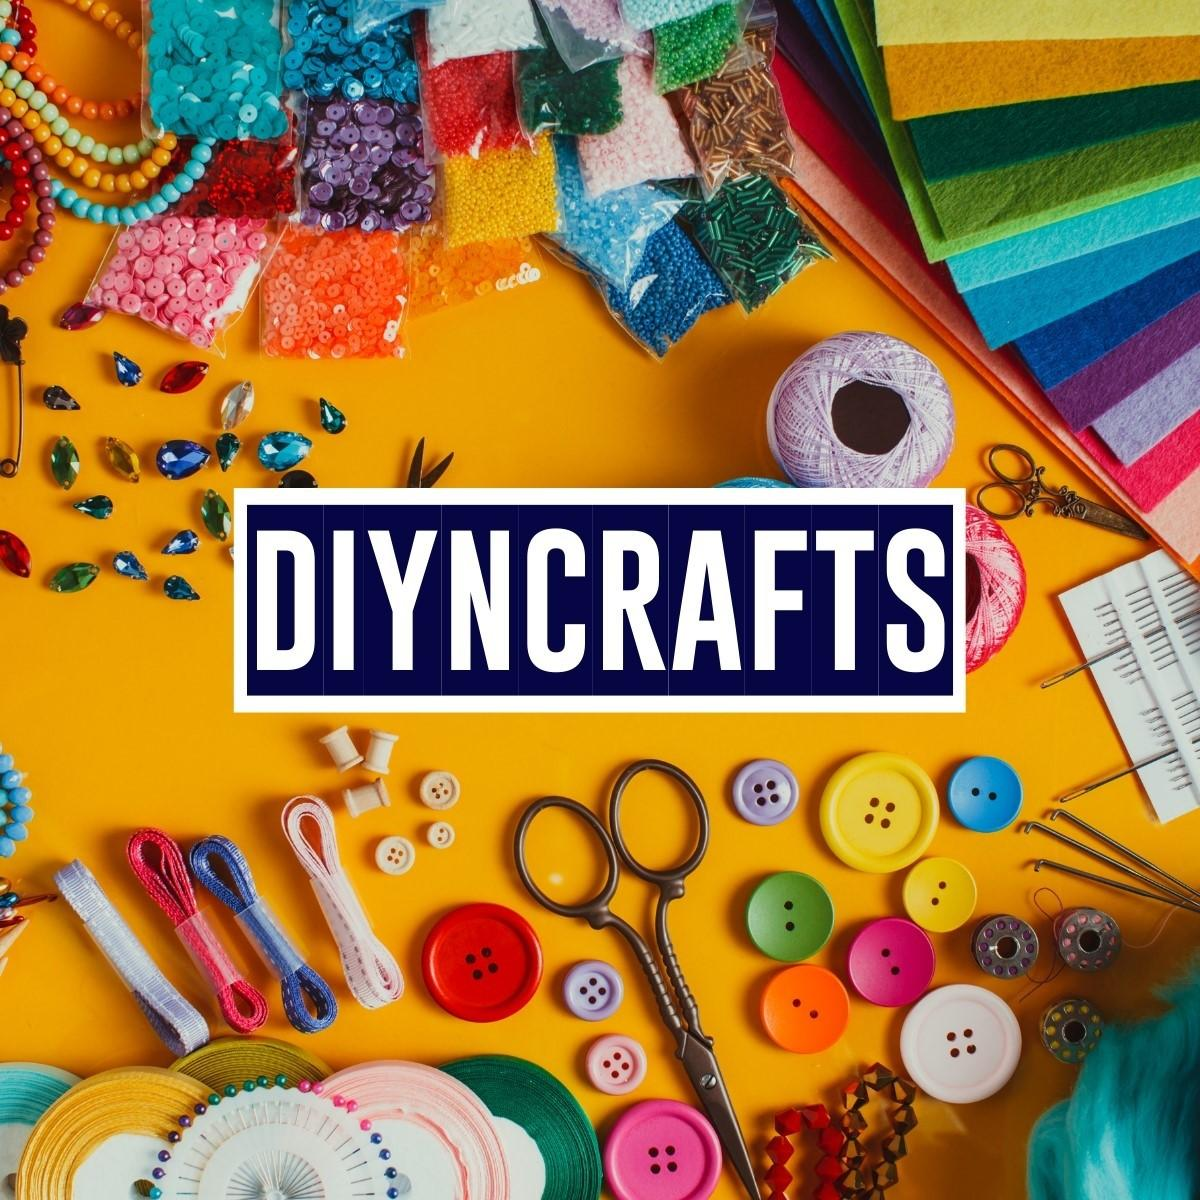 Avatar - DIYnCrafts